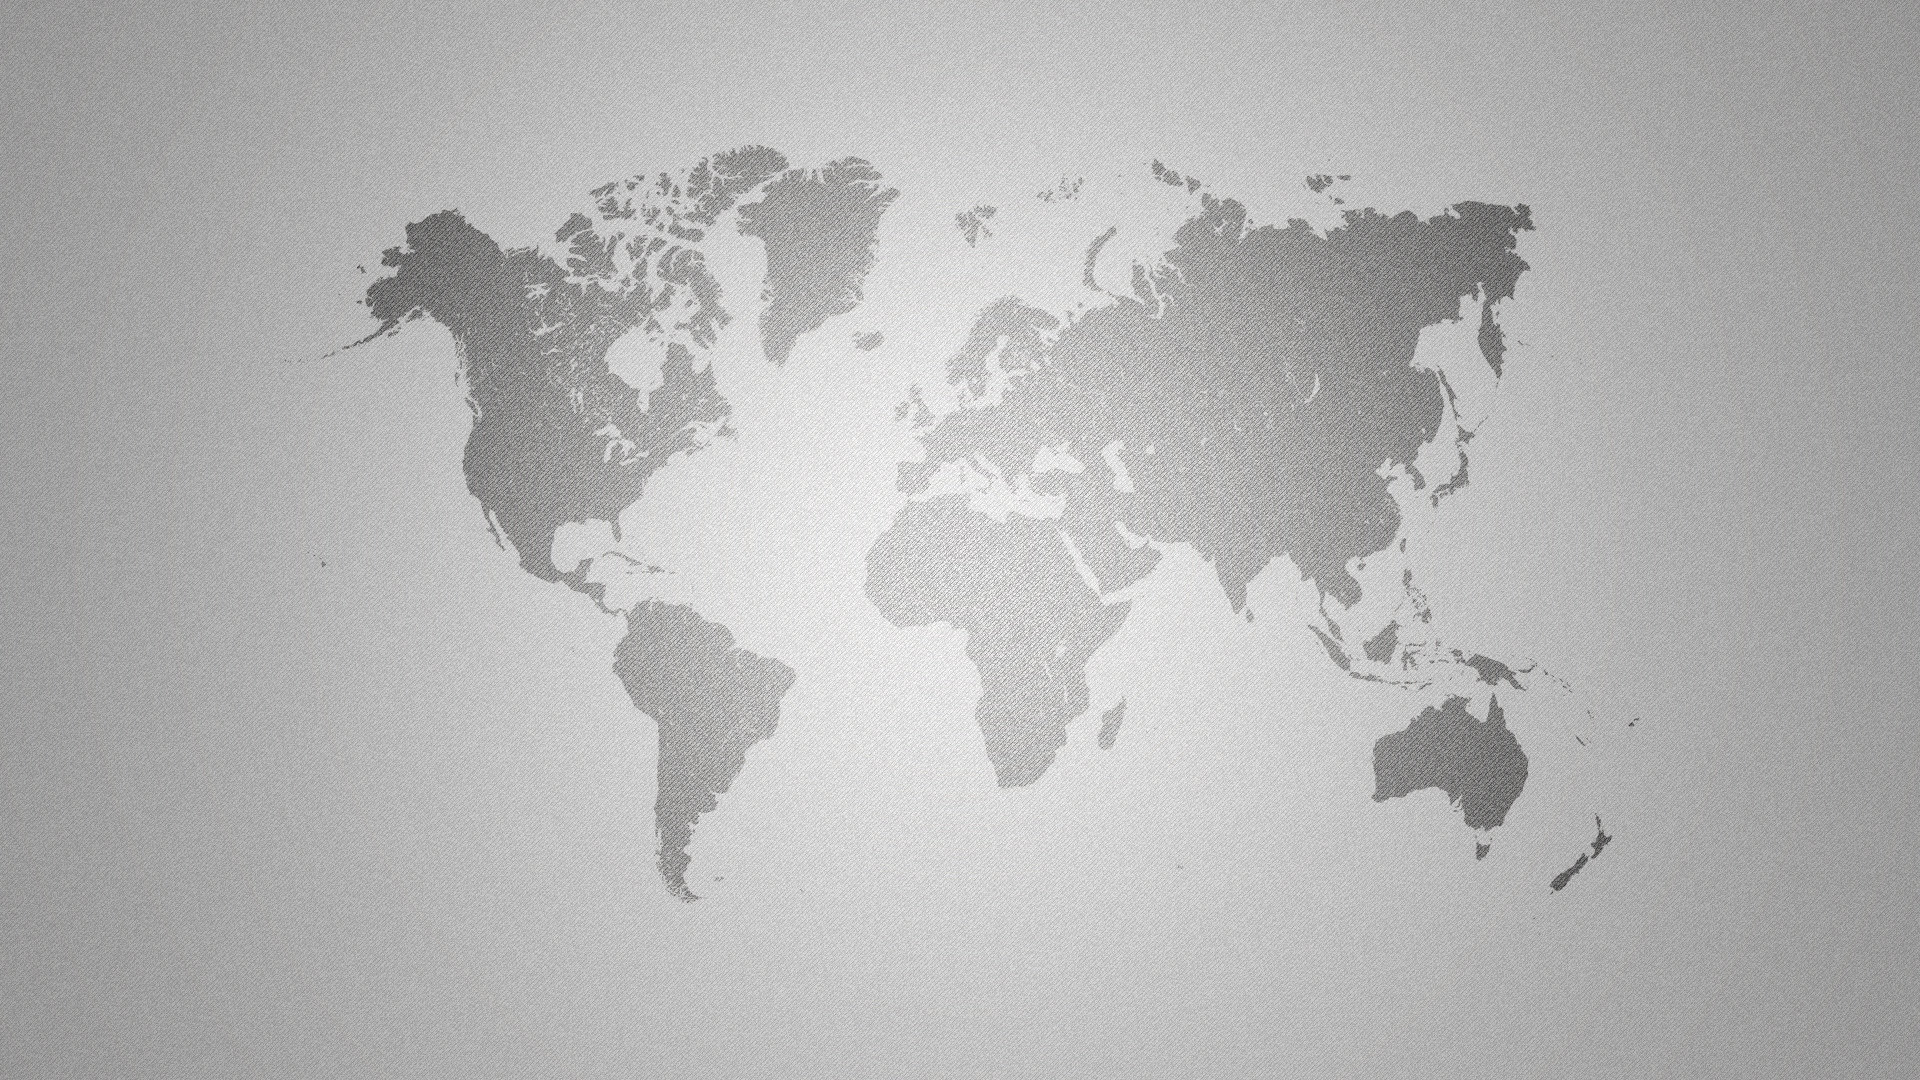 World Map Hd Wallpaper Posted By Ryan Sellers